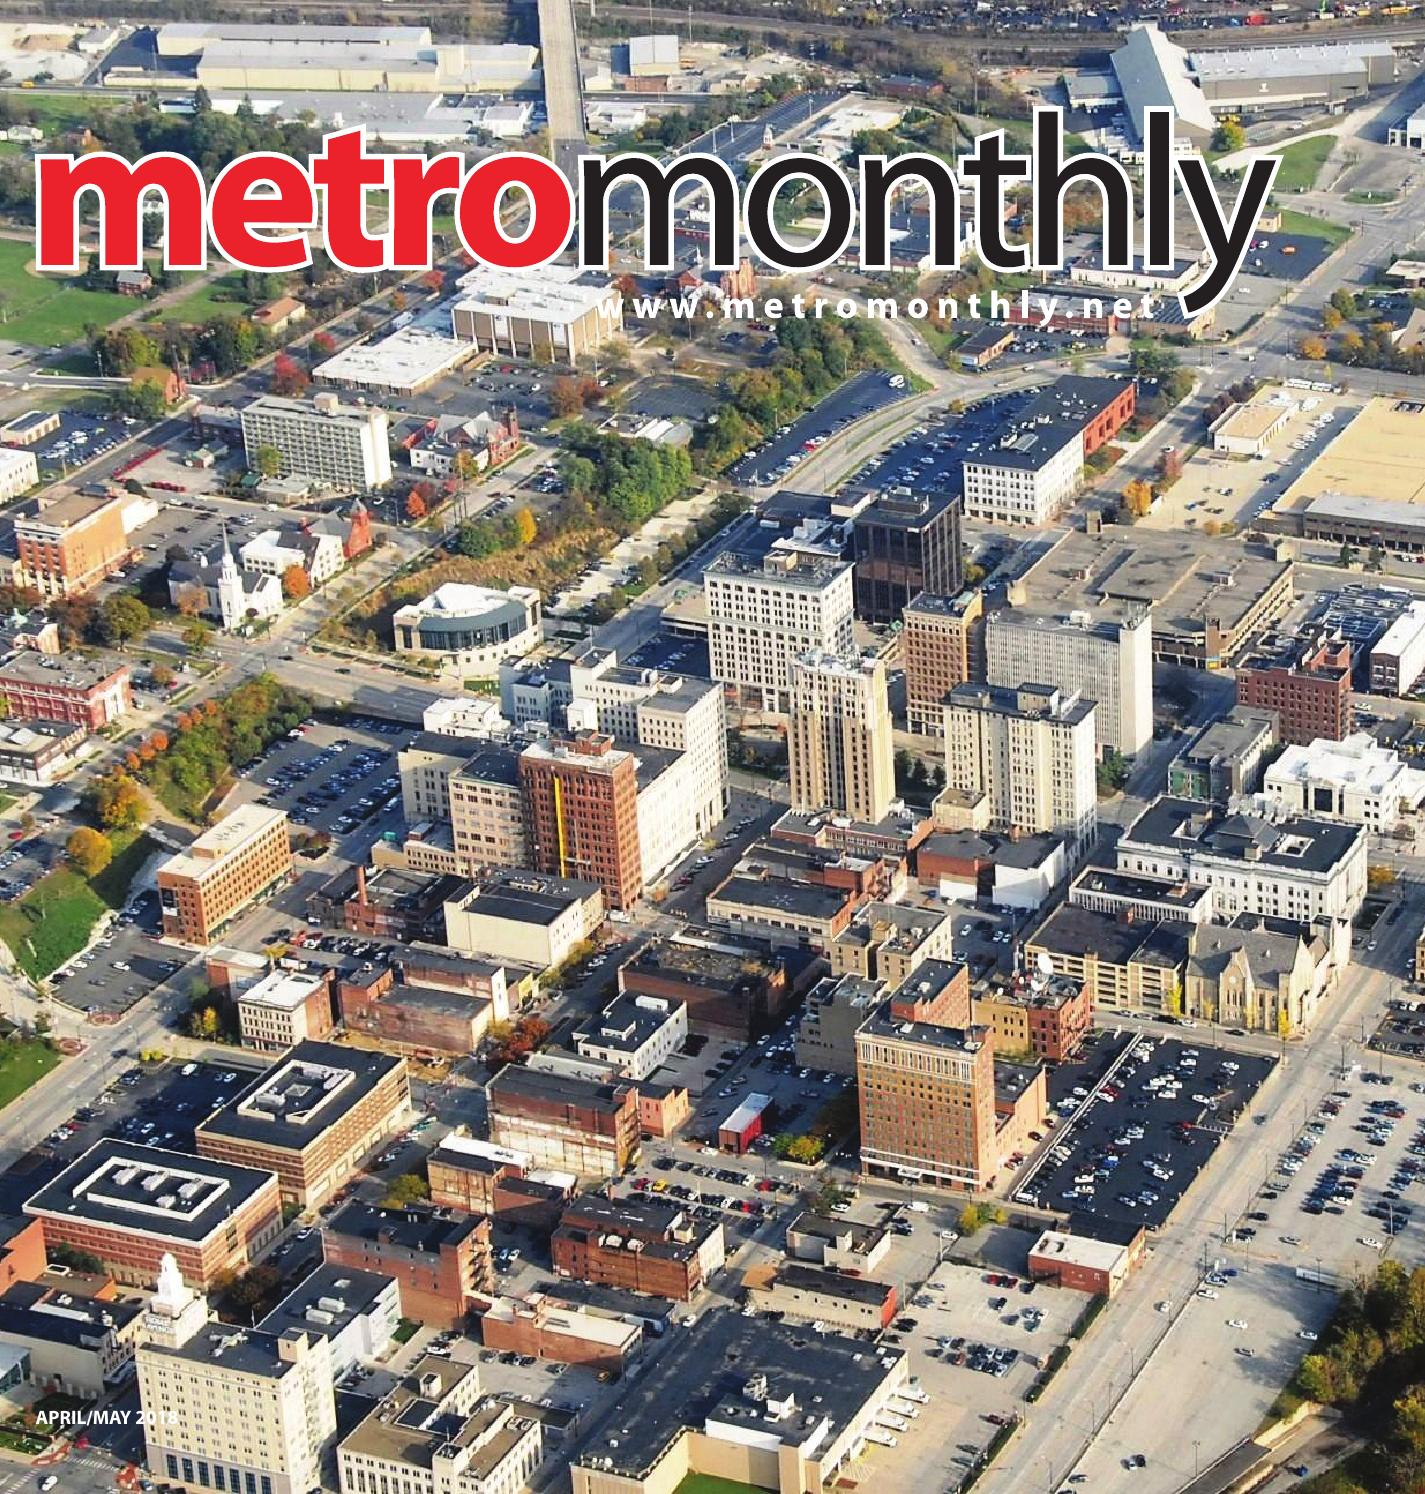 Metro Monthly APR/MAY 2018 by Metro Monthly - issuu